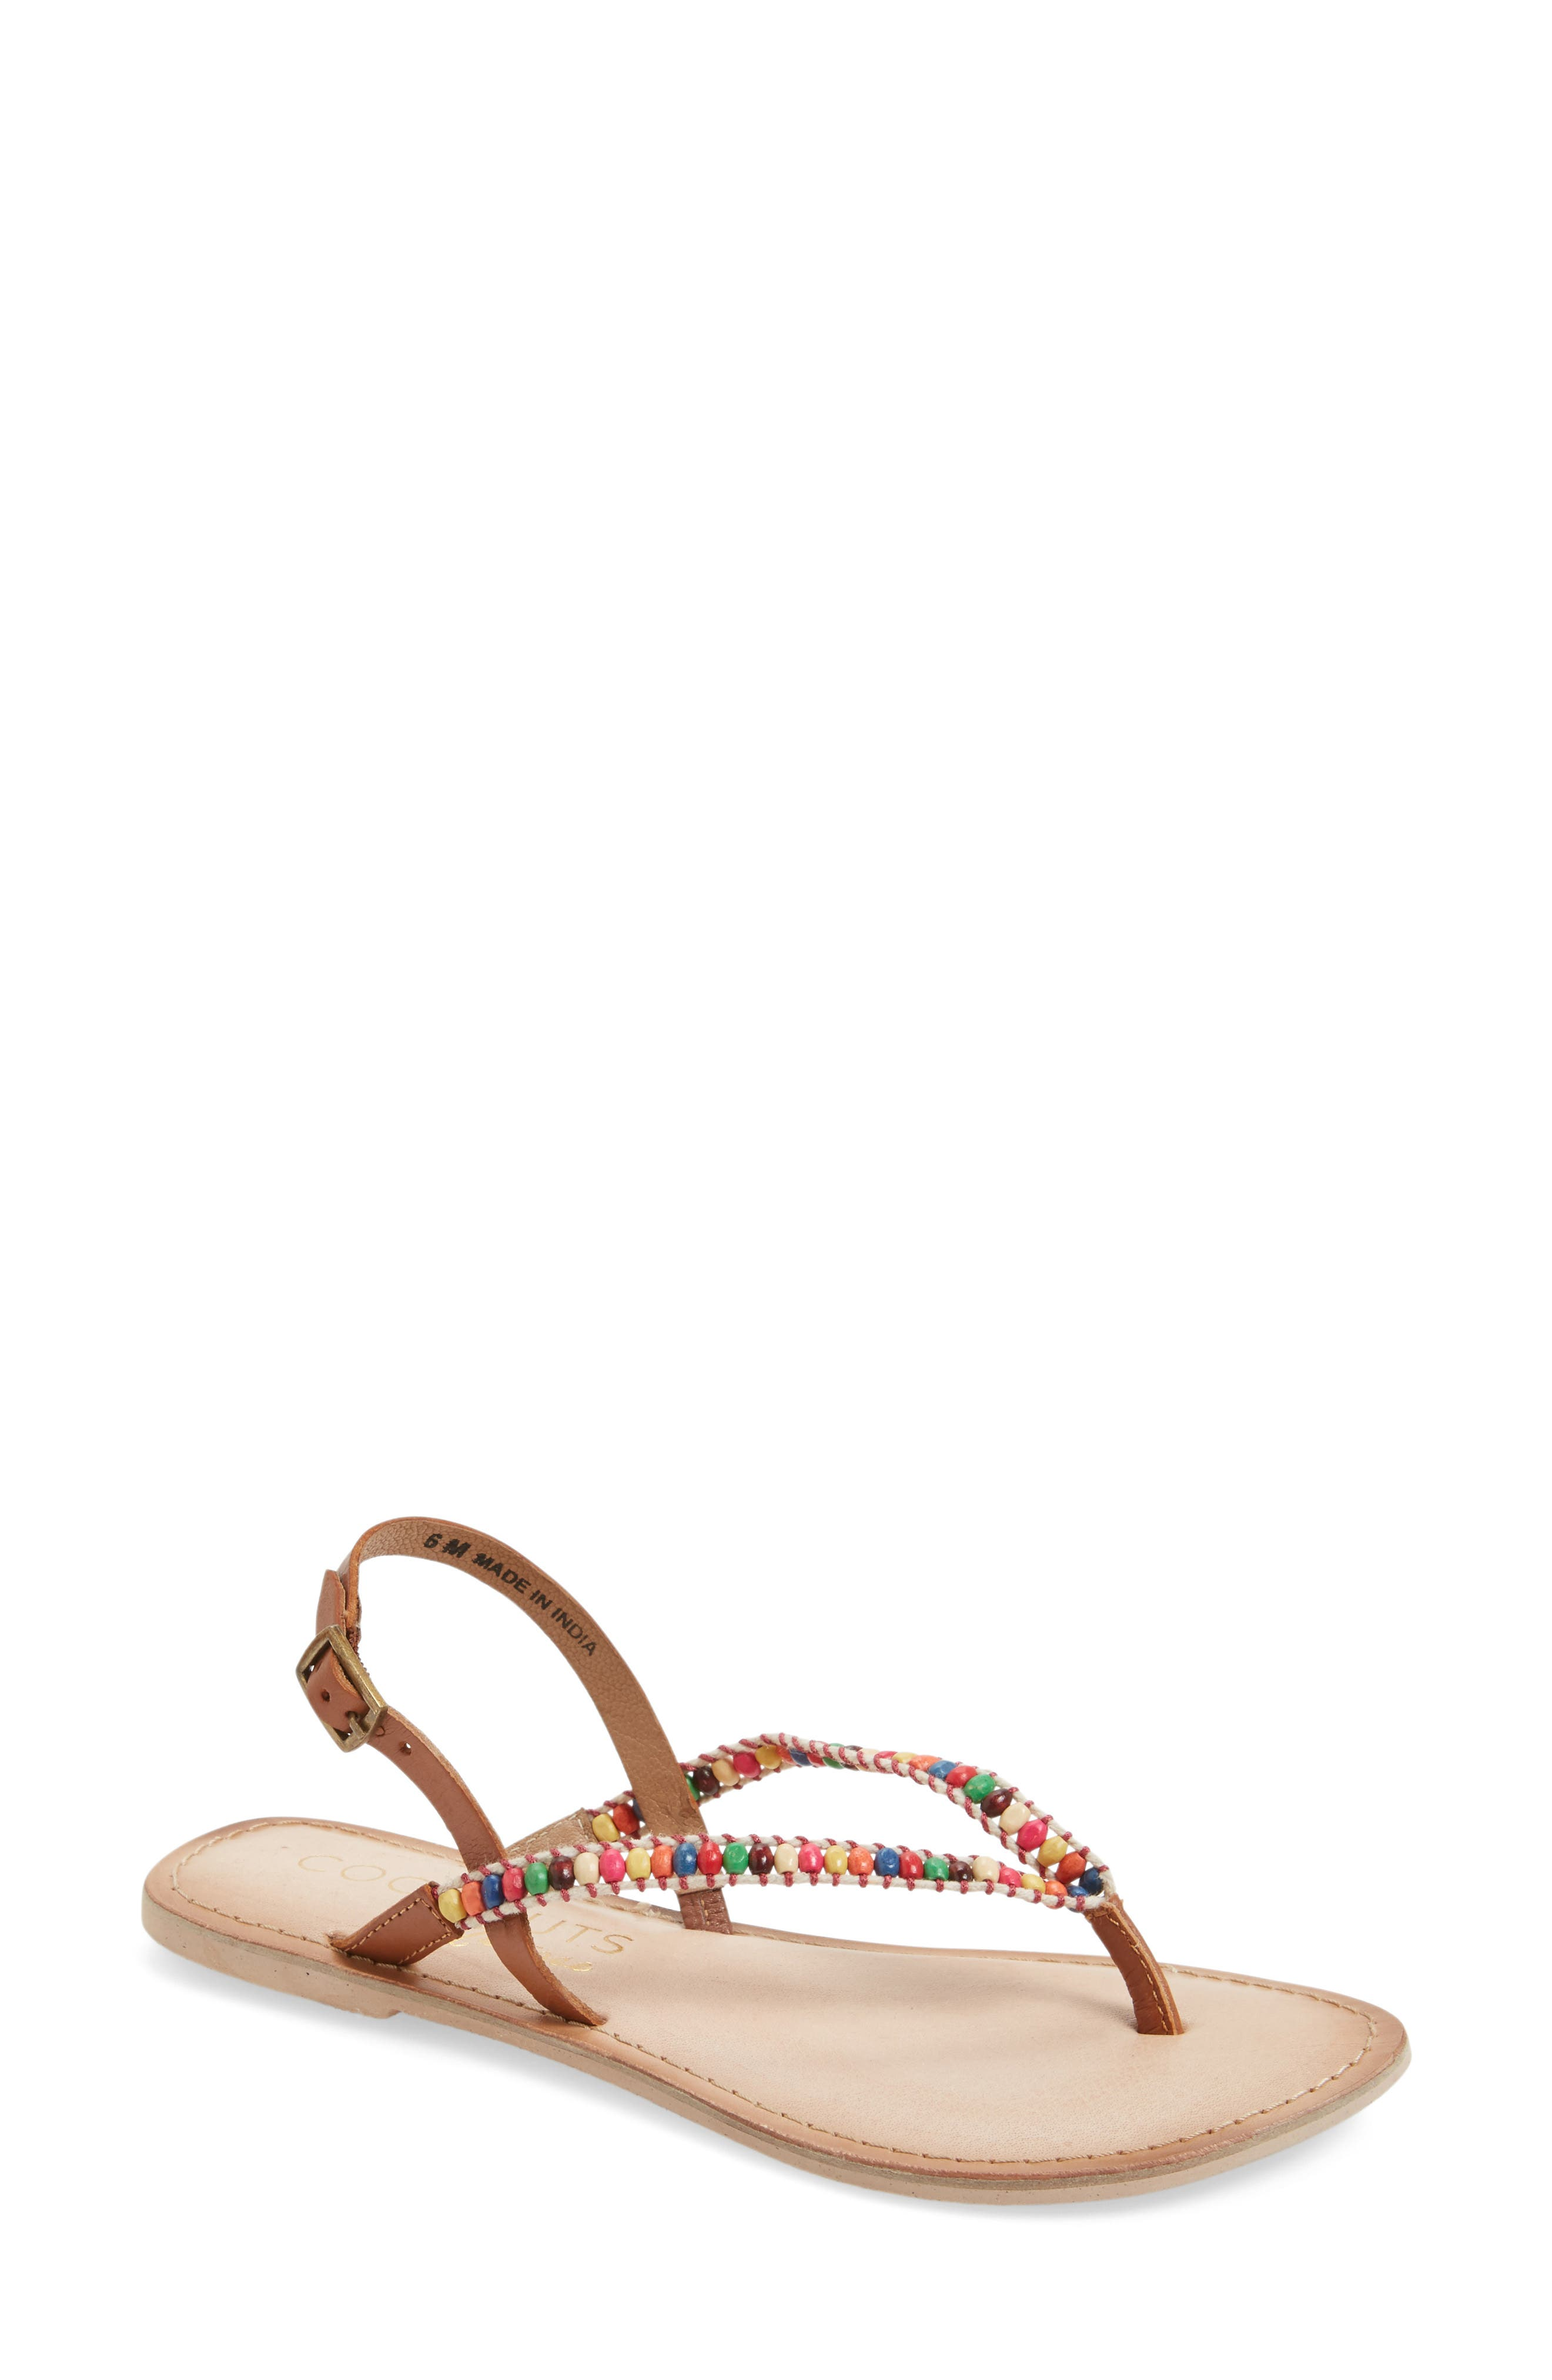 Alternate Image 1 Selected - Coconuts by Matisse Celebration Beaded Sandal (Women)